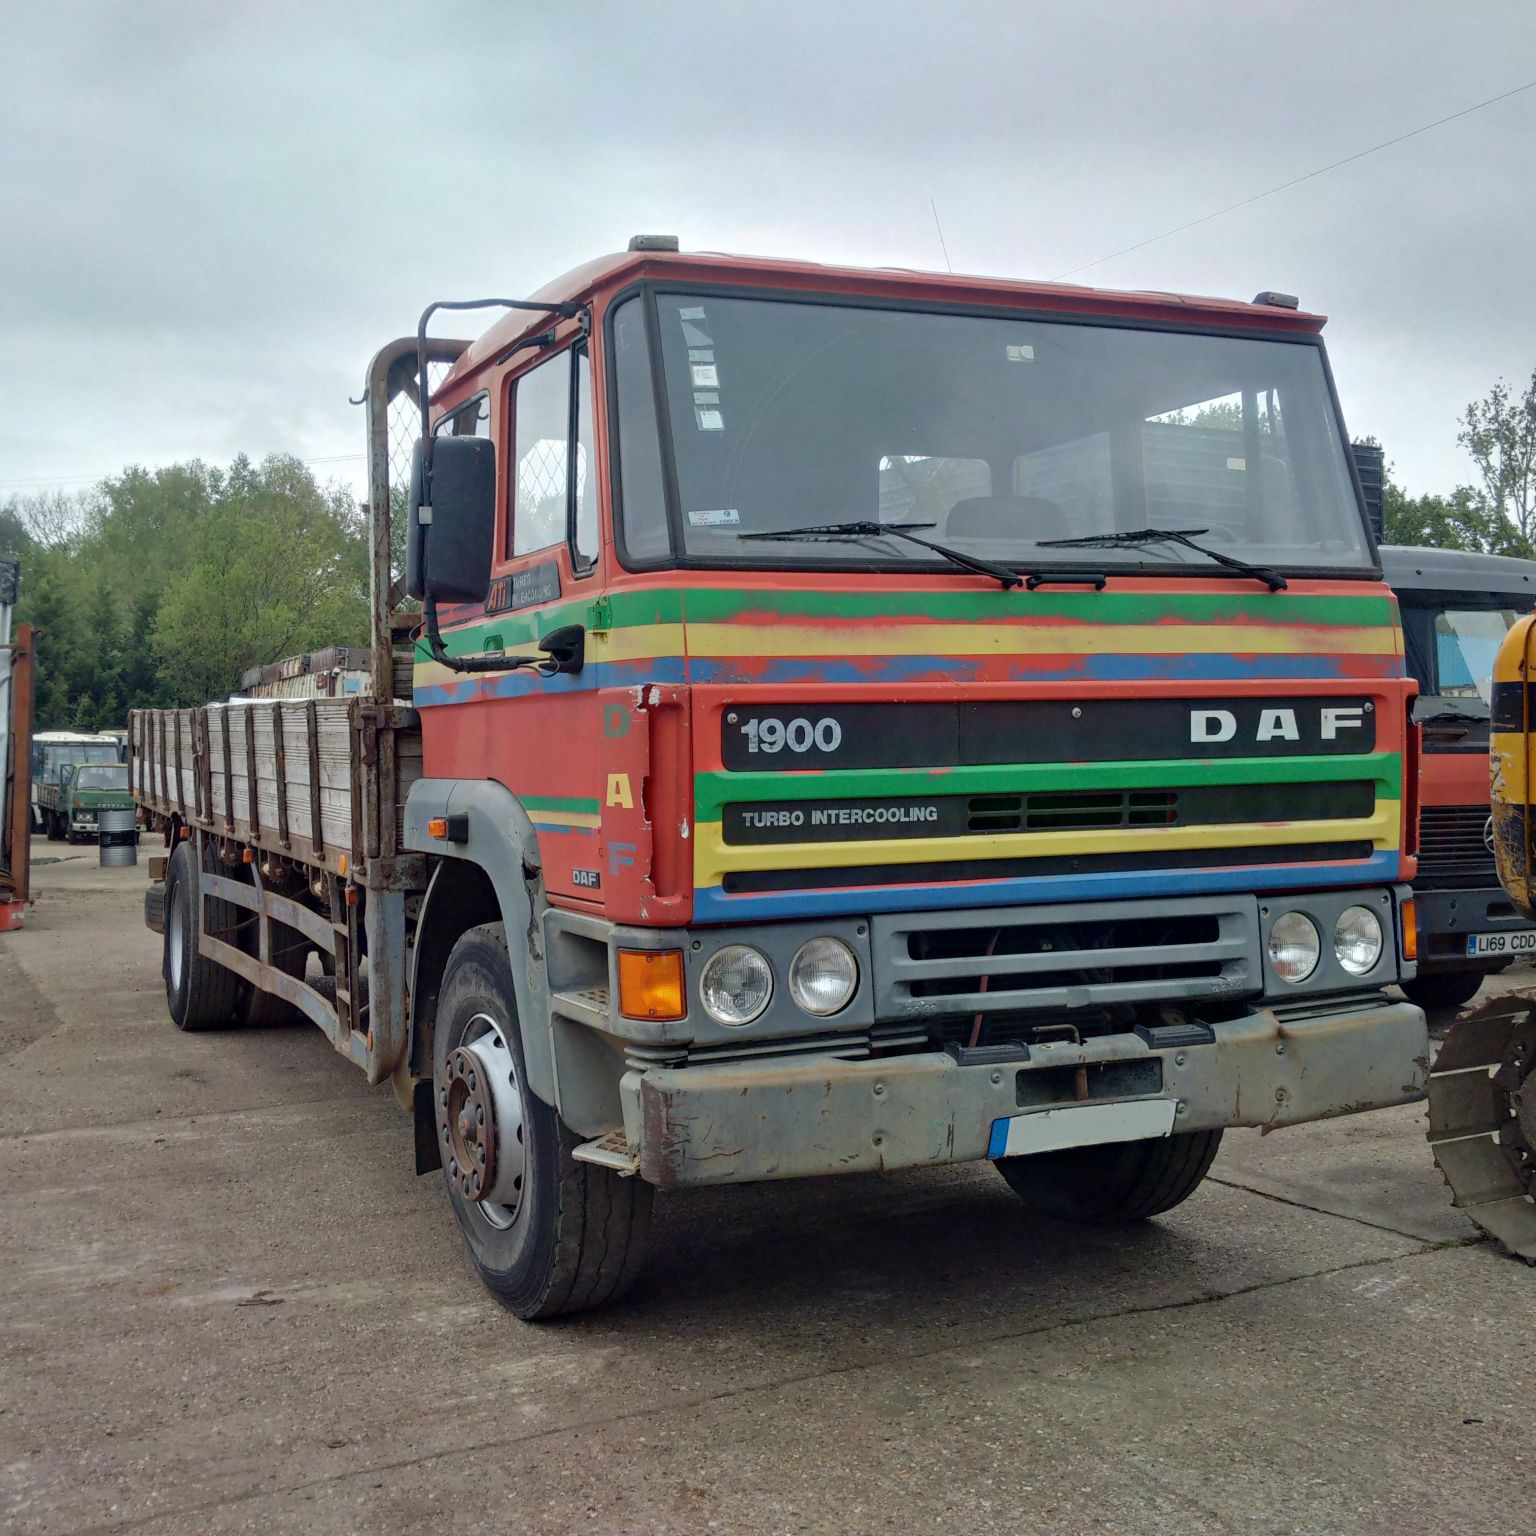 Left hand drive DAF 1900 ATI Turbo Intercooler 17.5 ton truck.